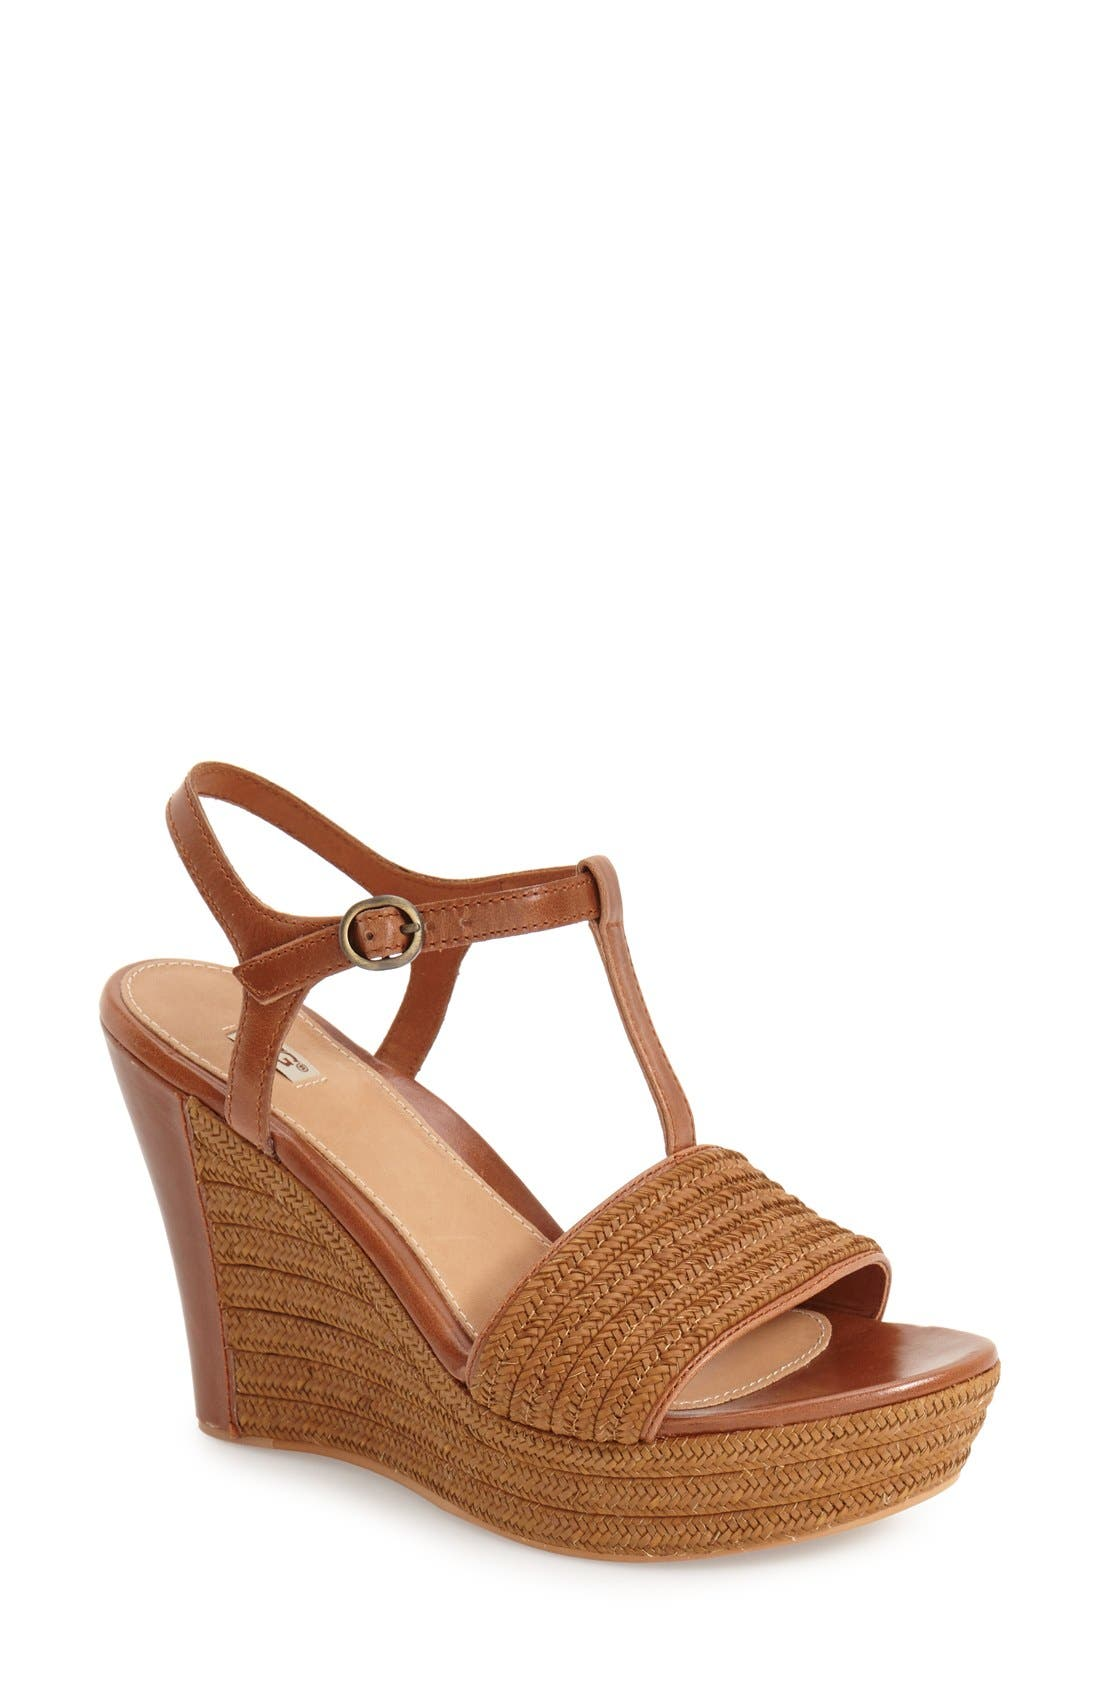 Main Image - UGG® 'Fitchie' T-Strap Wedge Sandal (Women)